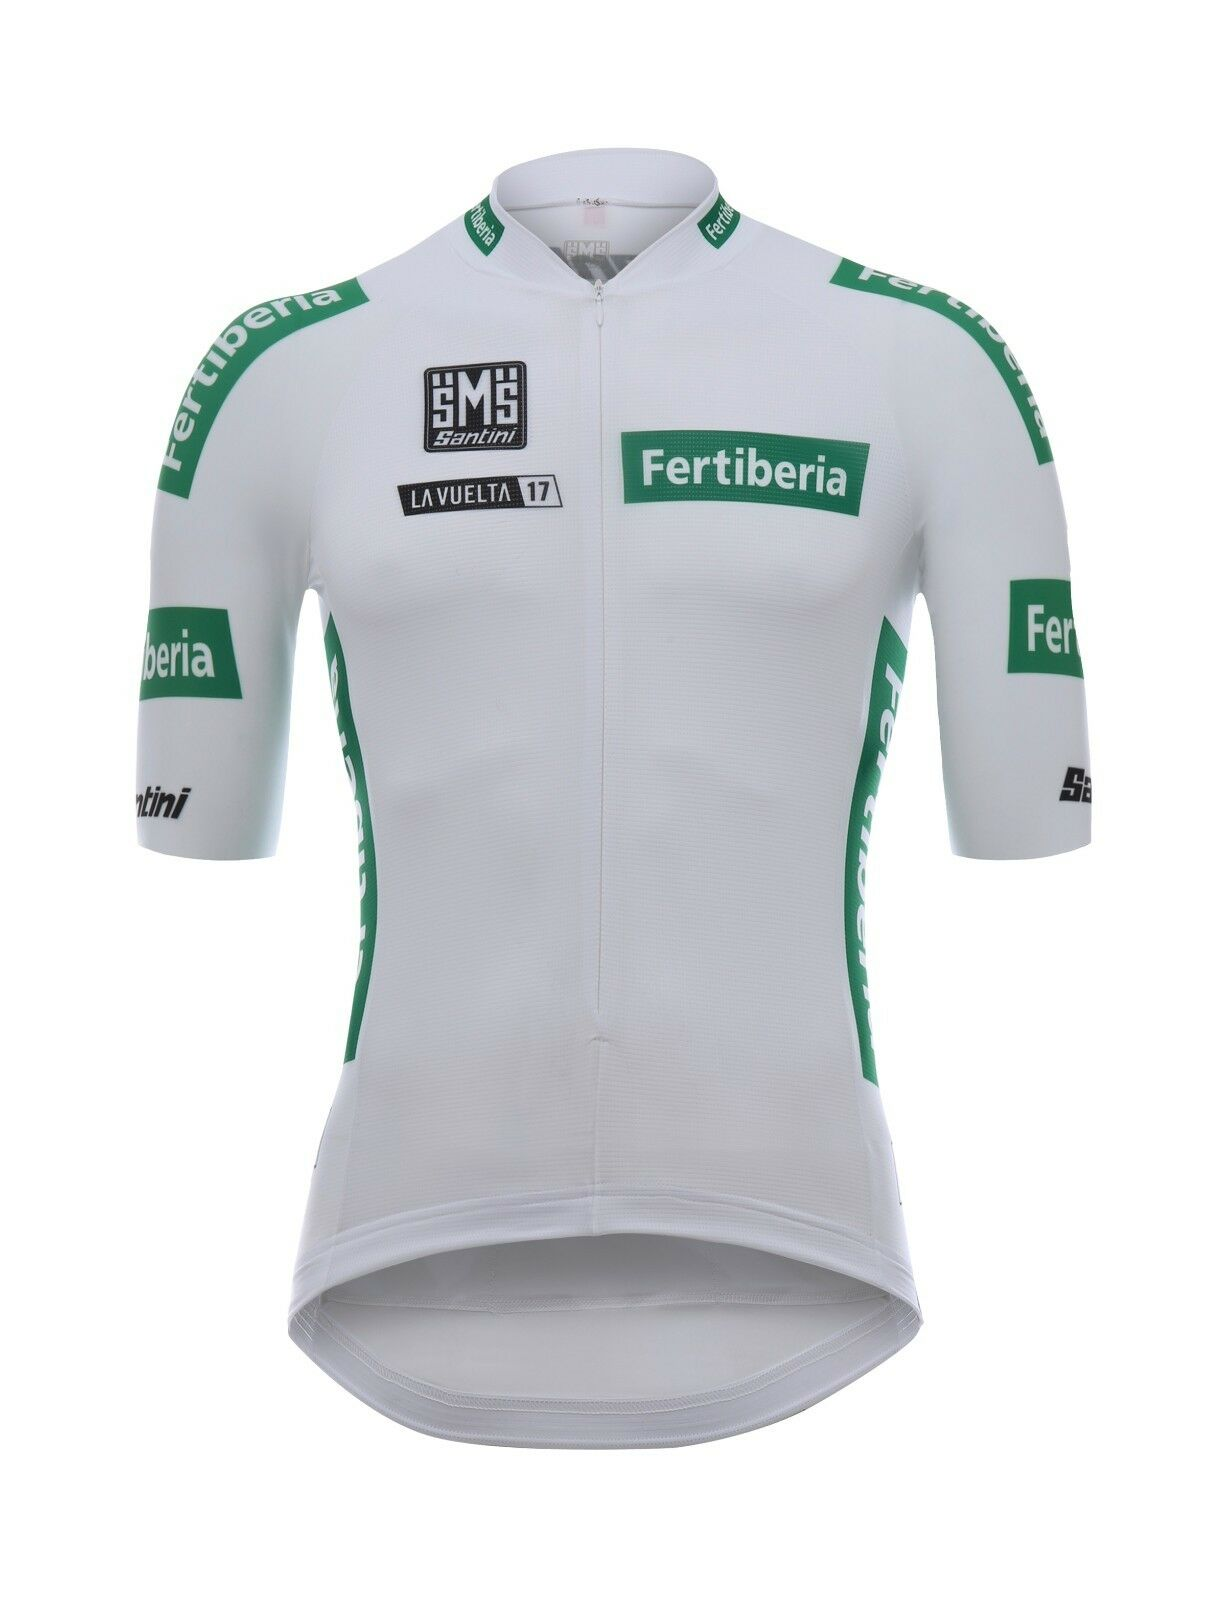 2017 La Vuelta White Leaders Cycling Jersey  Made in  by Santini